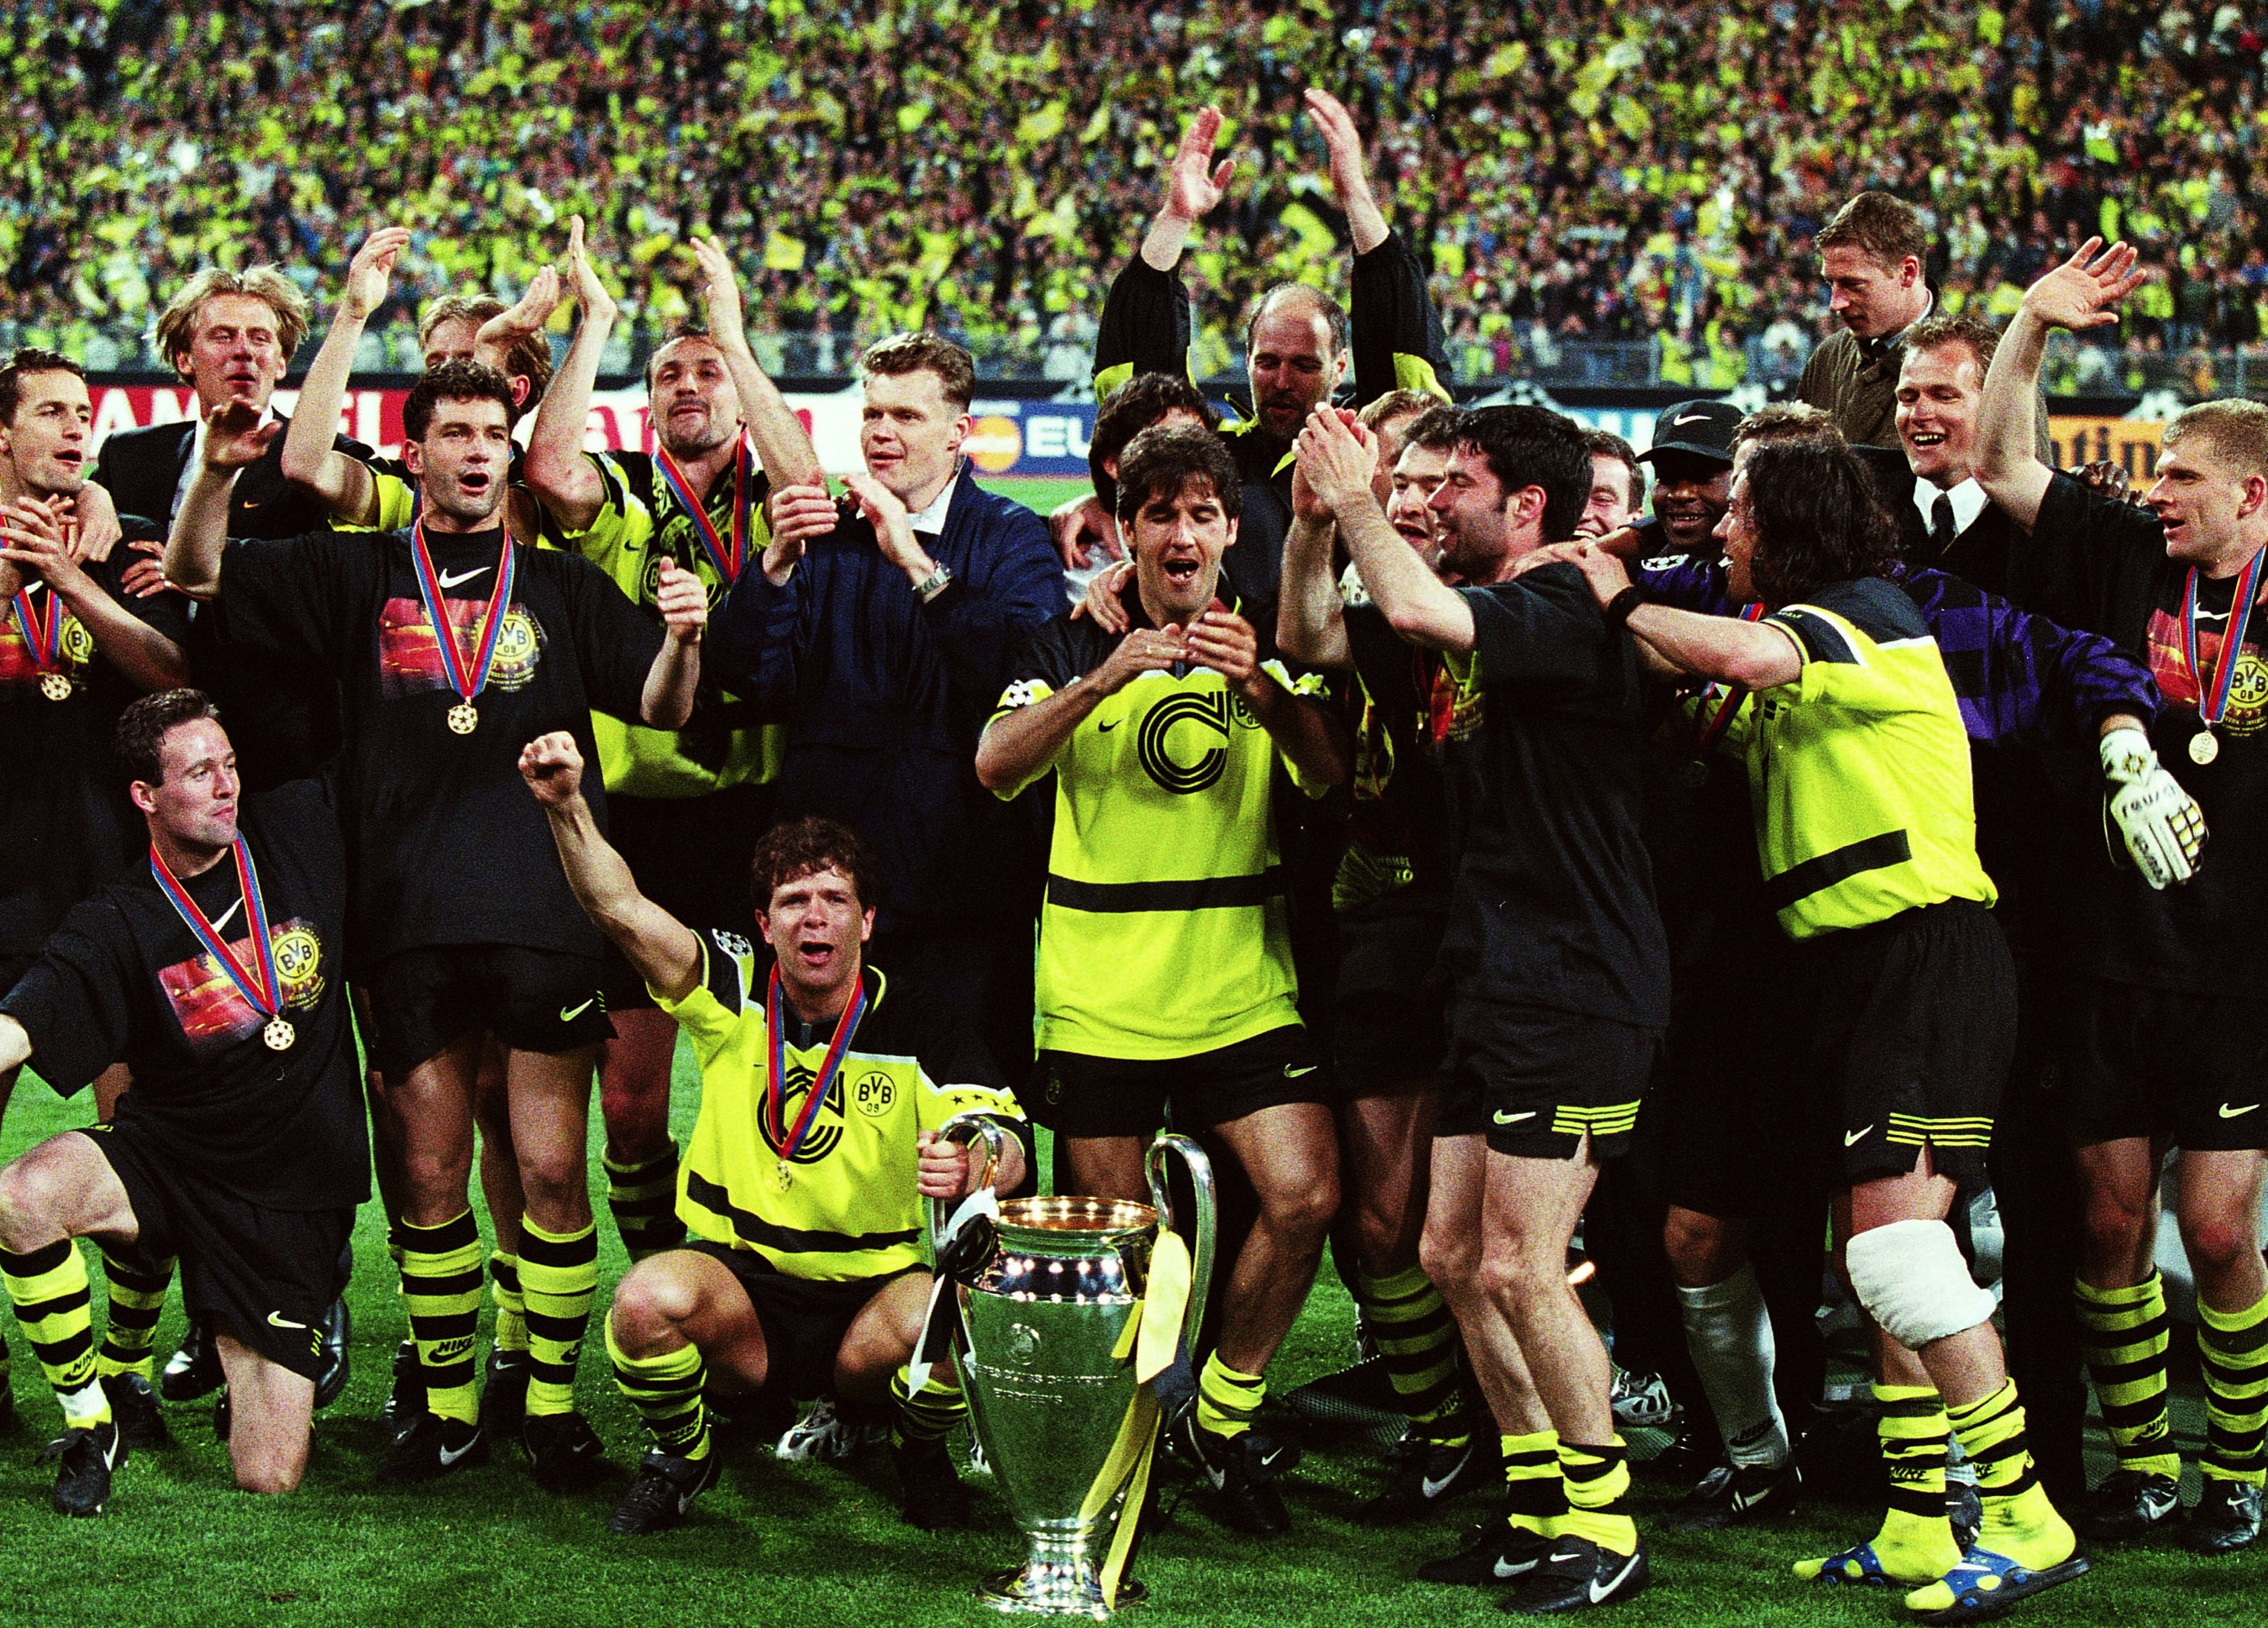 How Borussia Dortmund S Team Of The 1990s Put A City On The Football Map